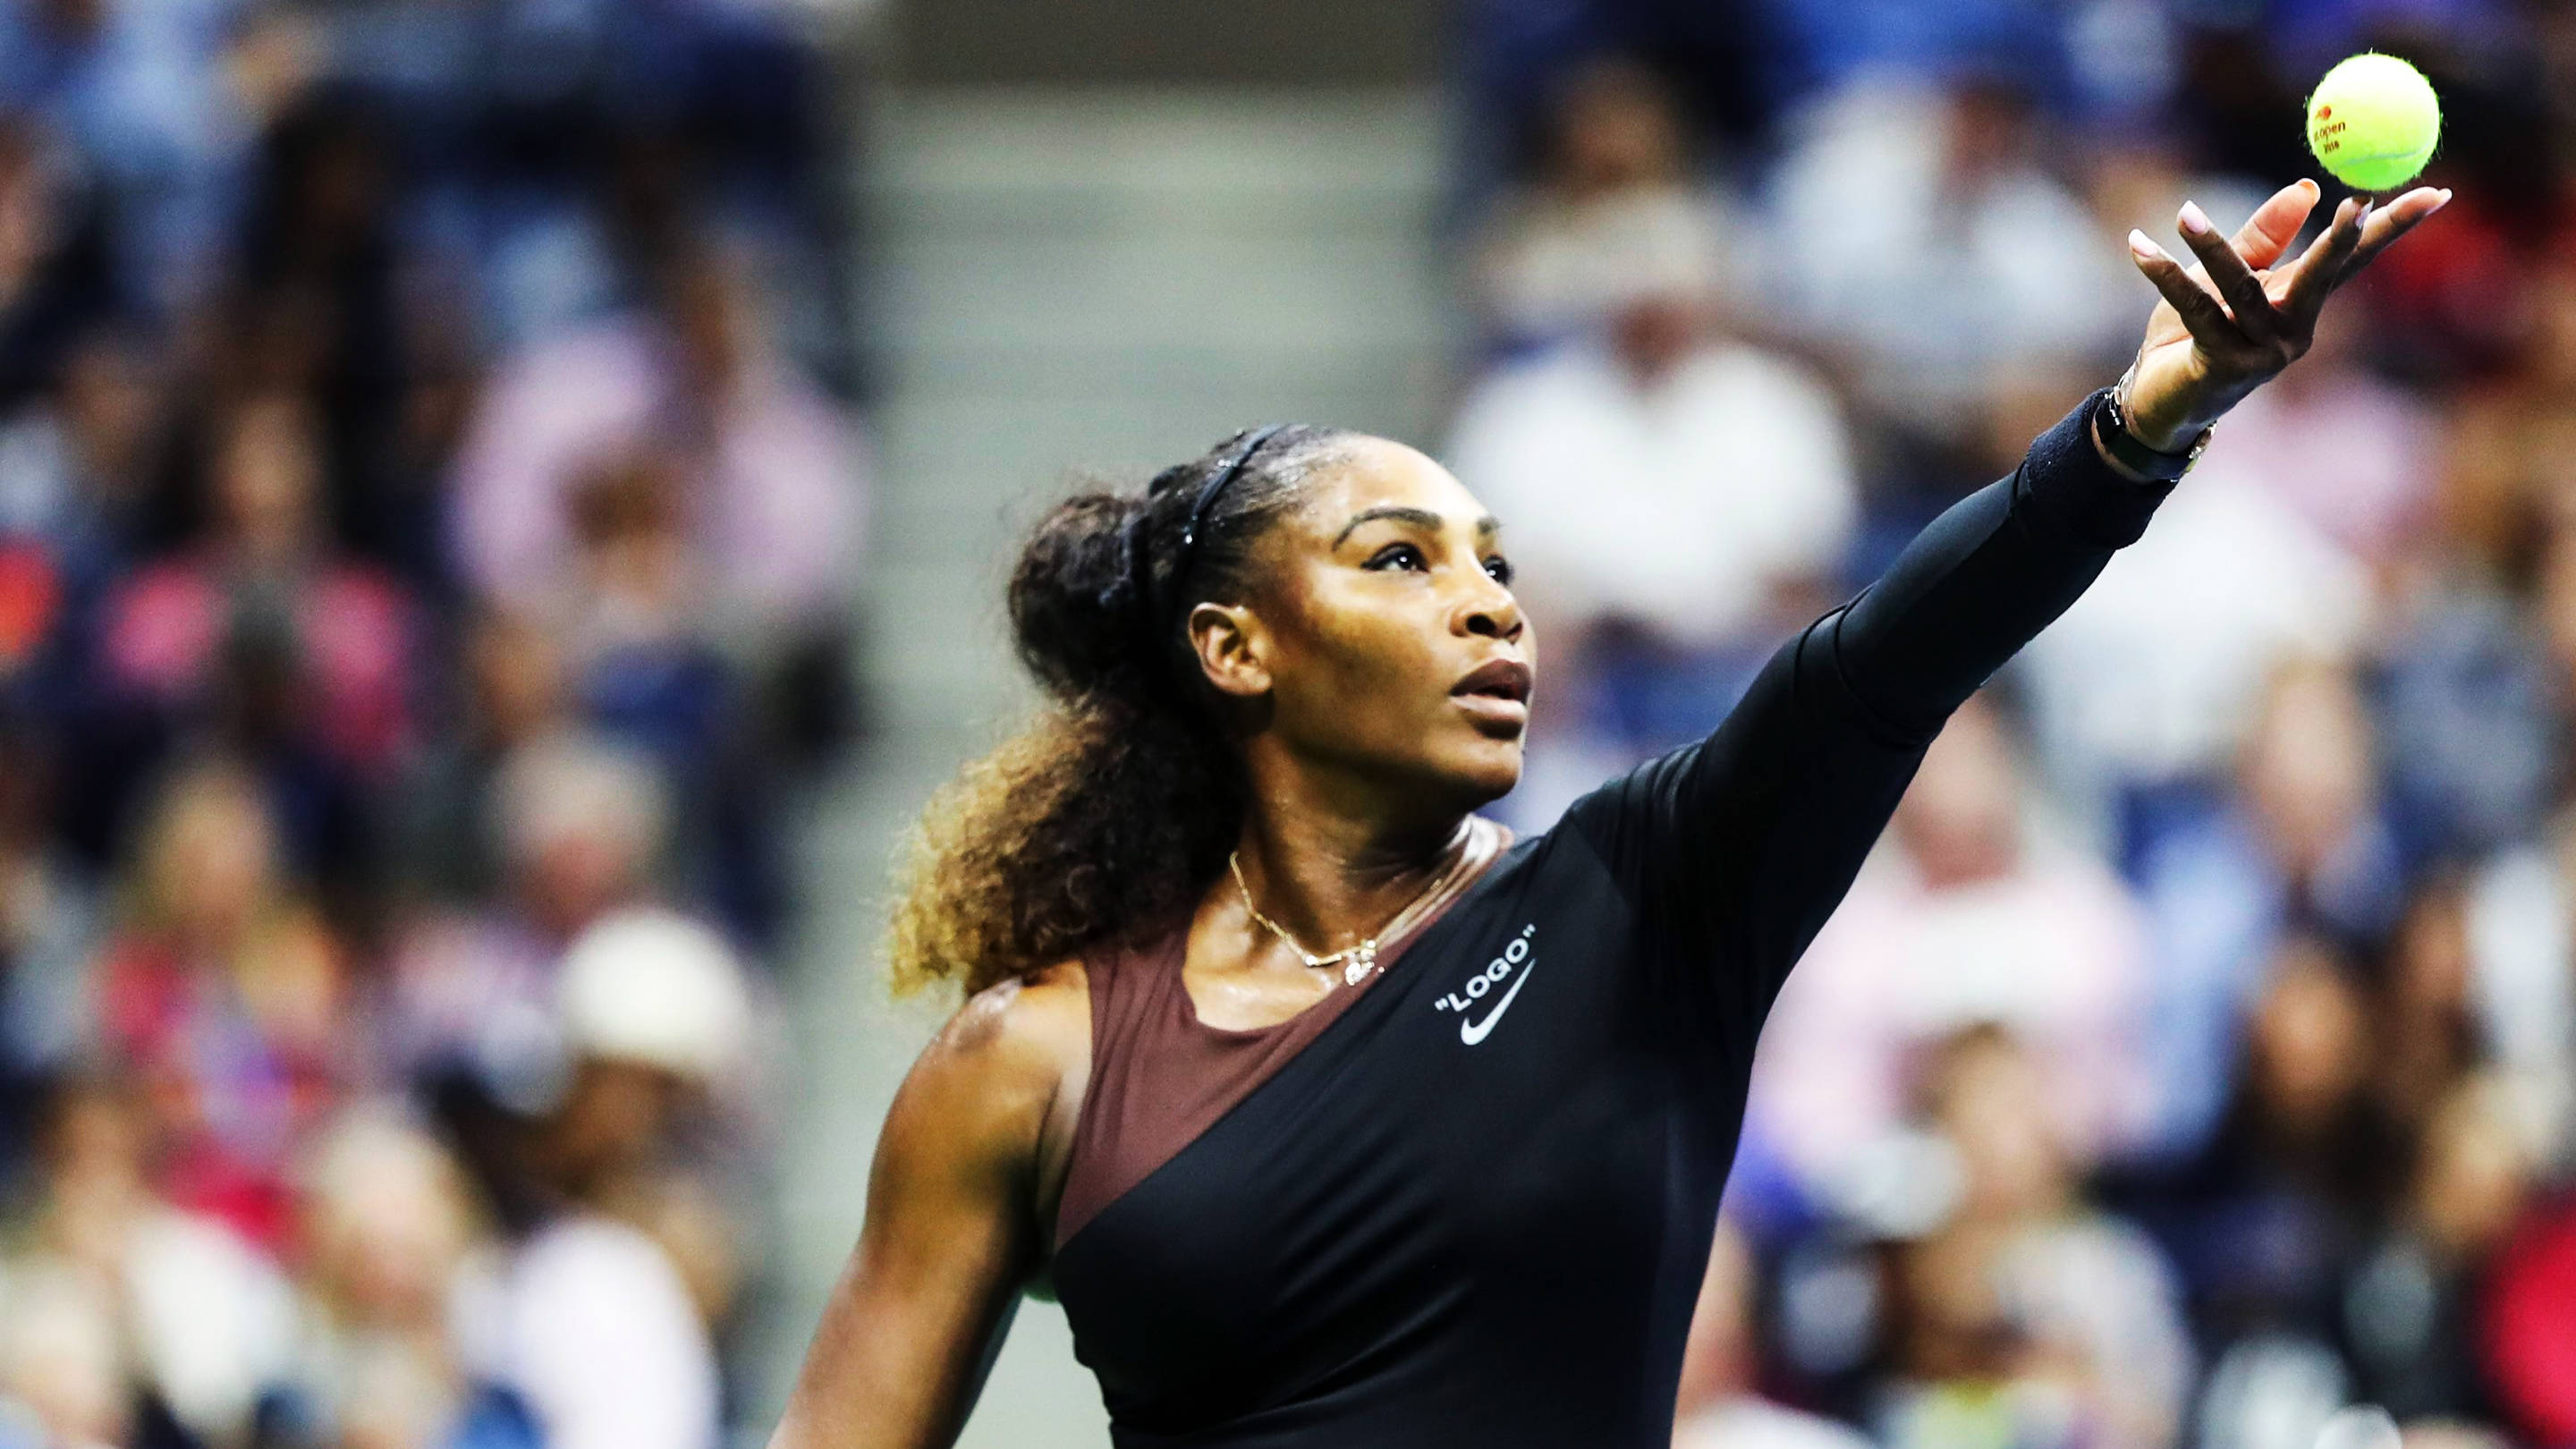 Serena Williams and the US Open